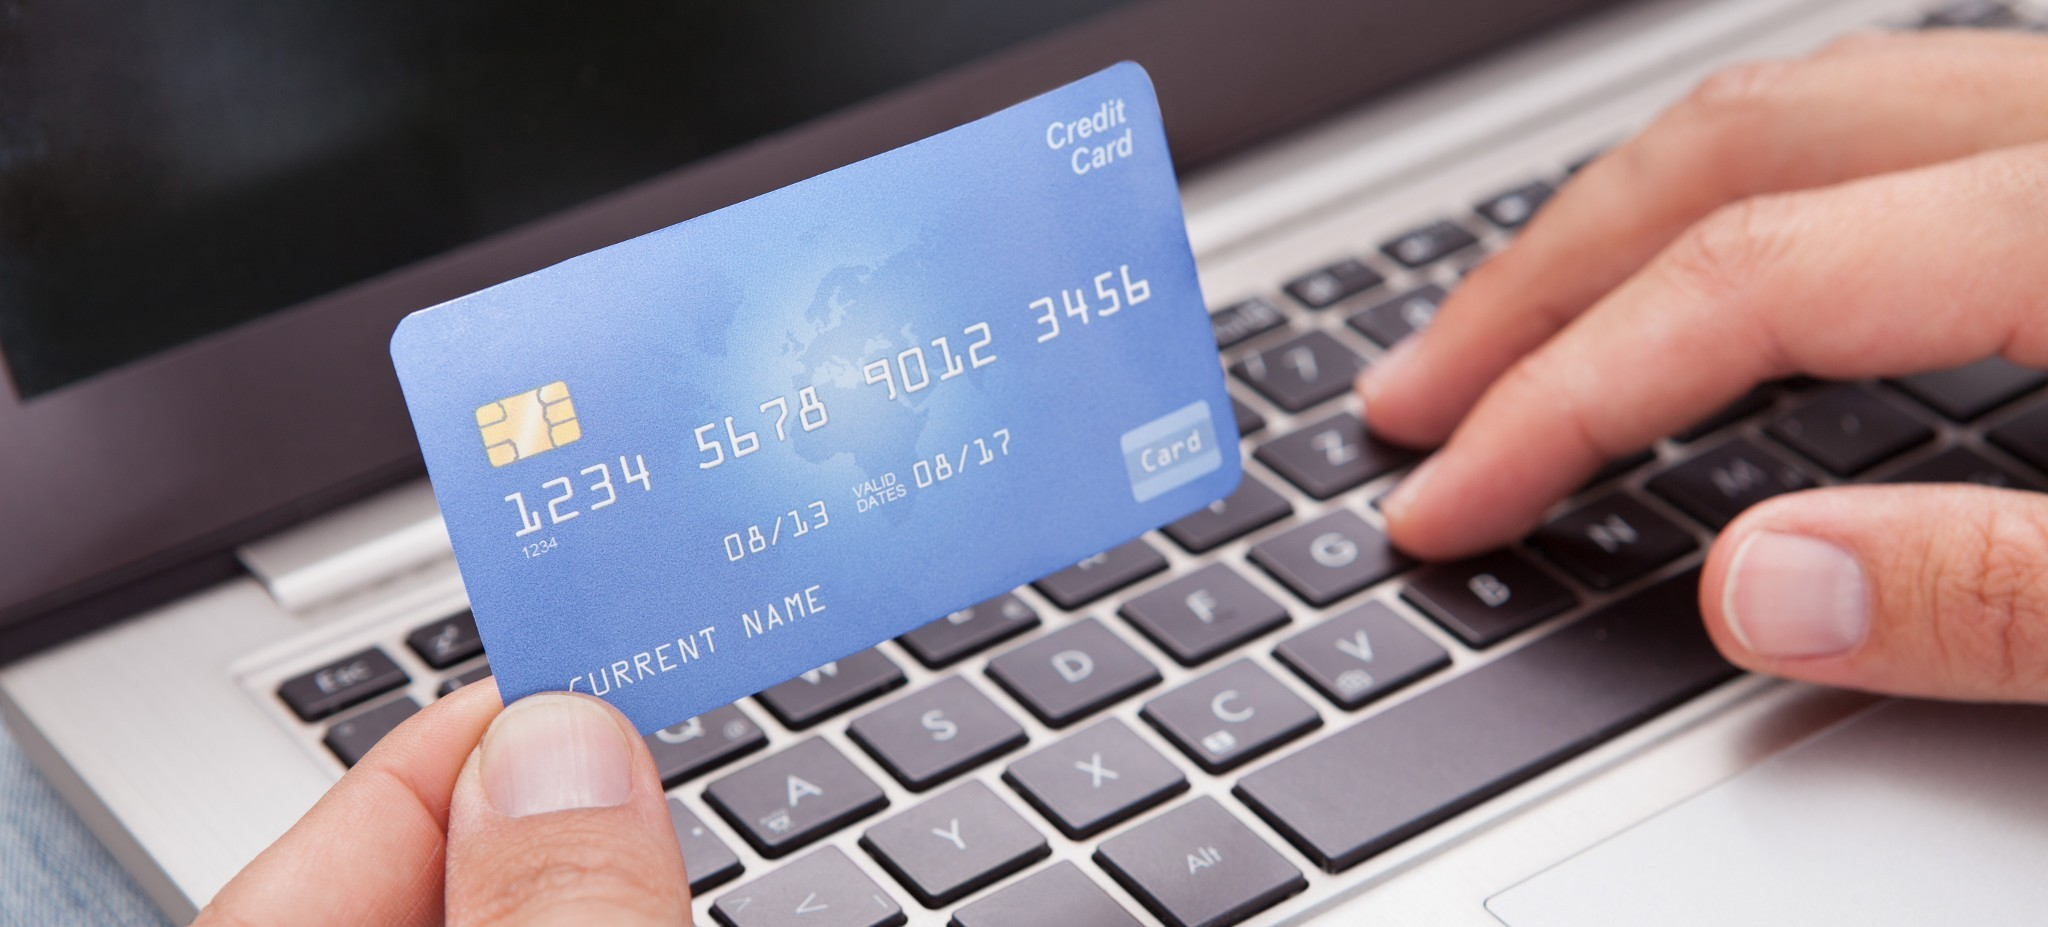 Regulations on non-cash payments